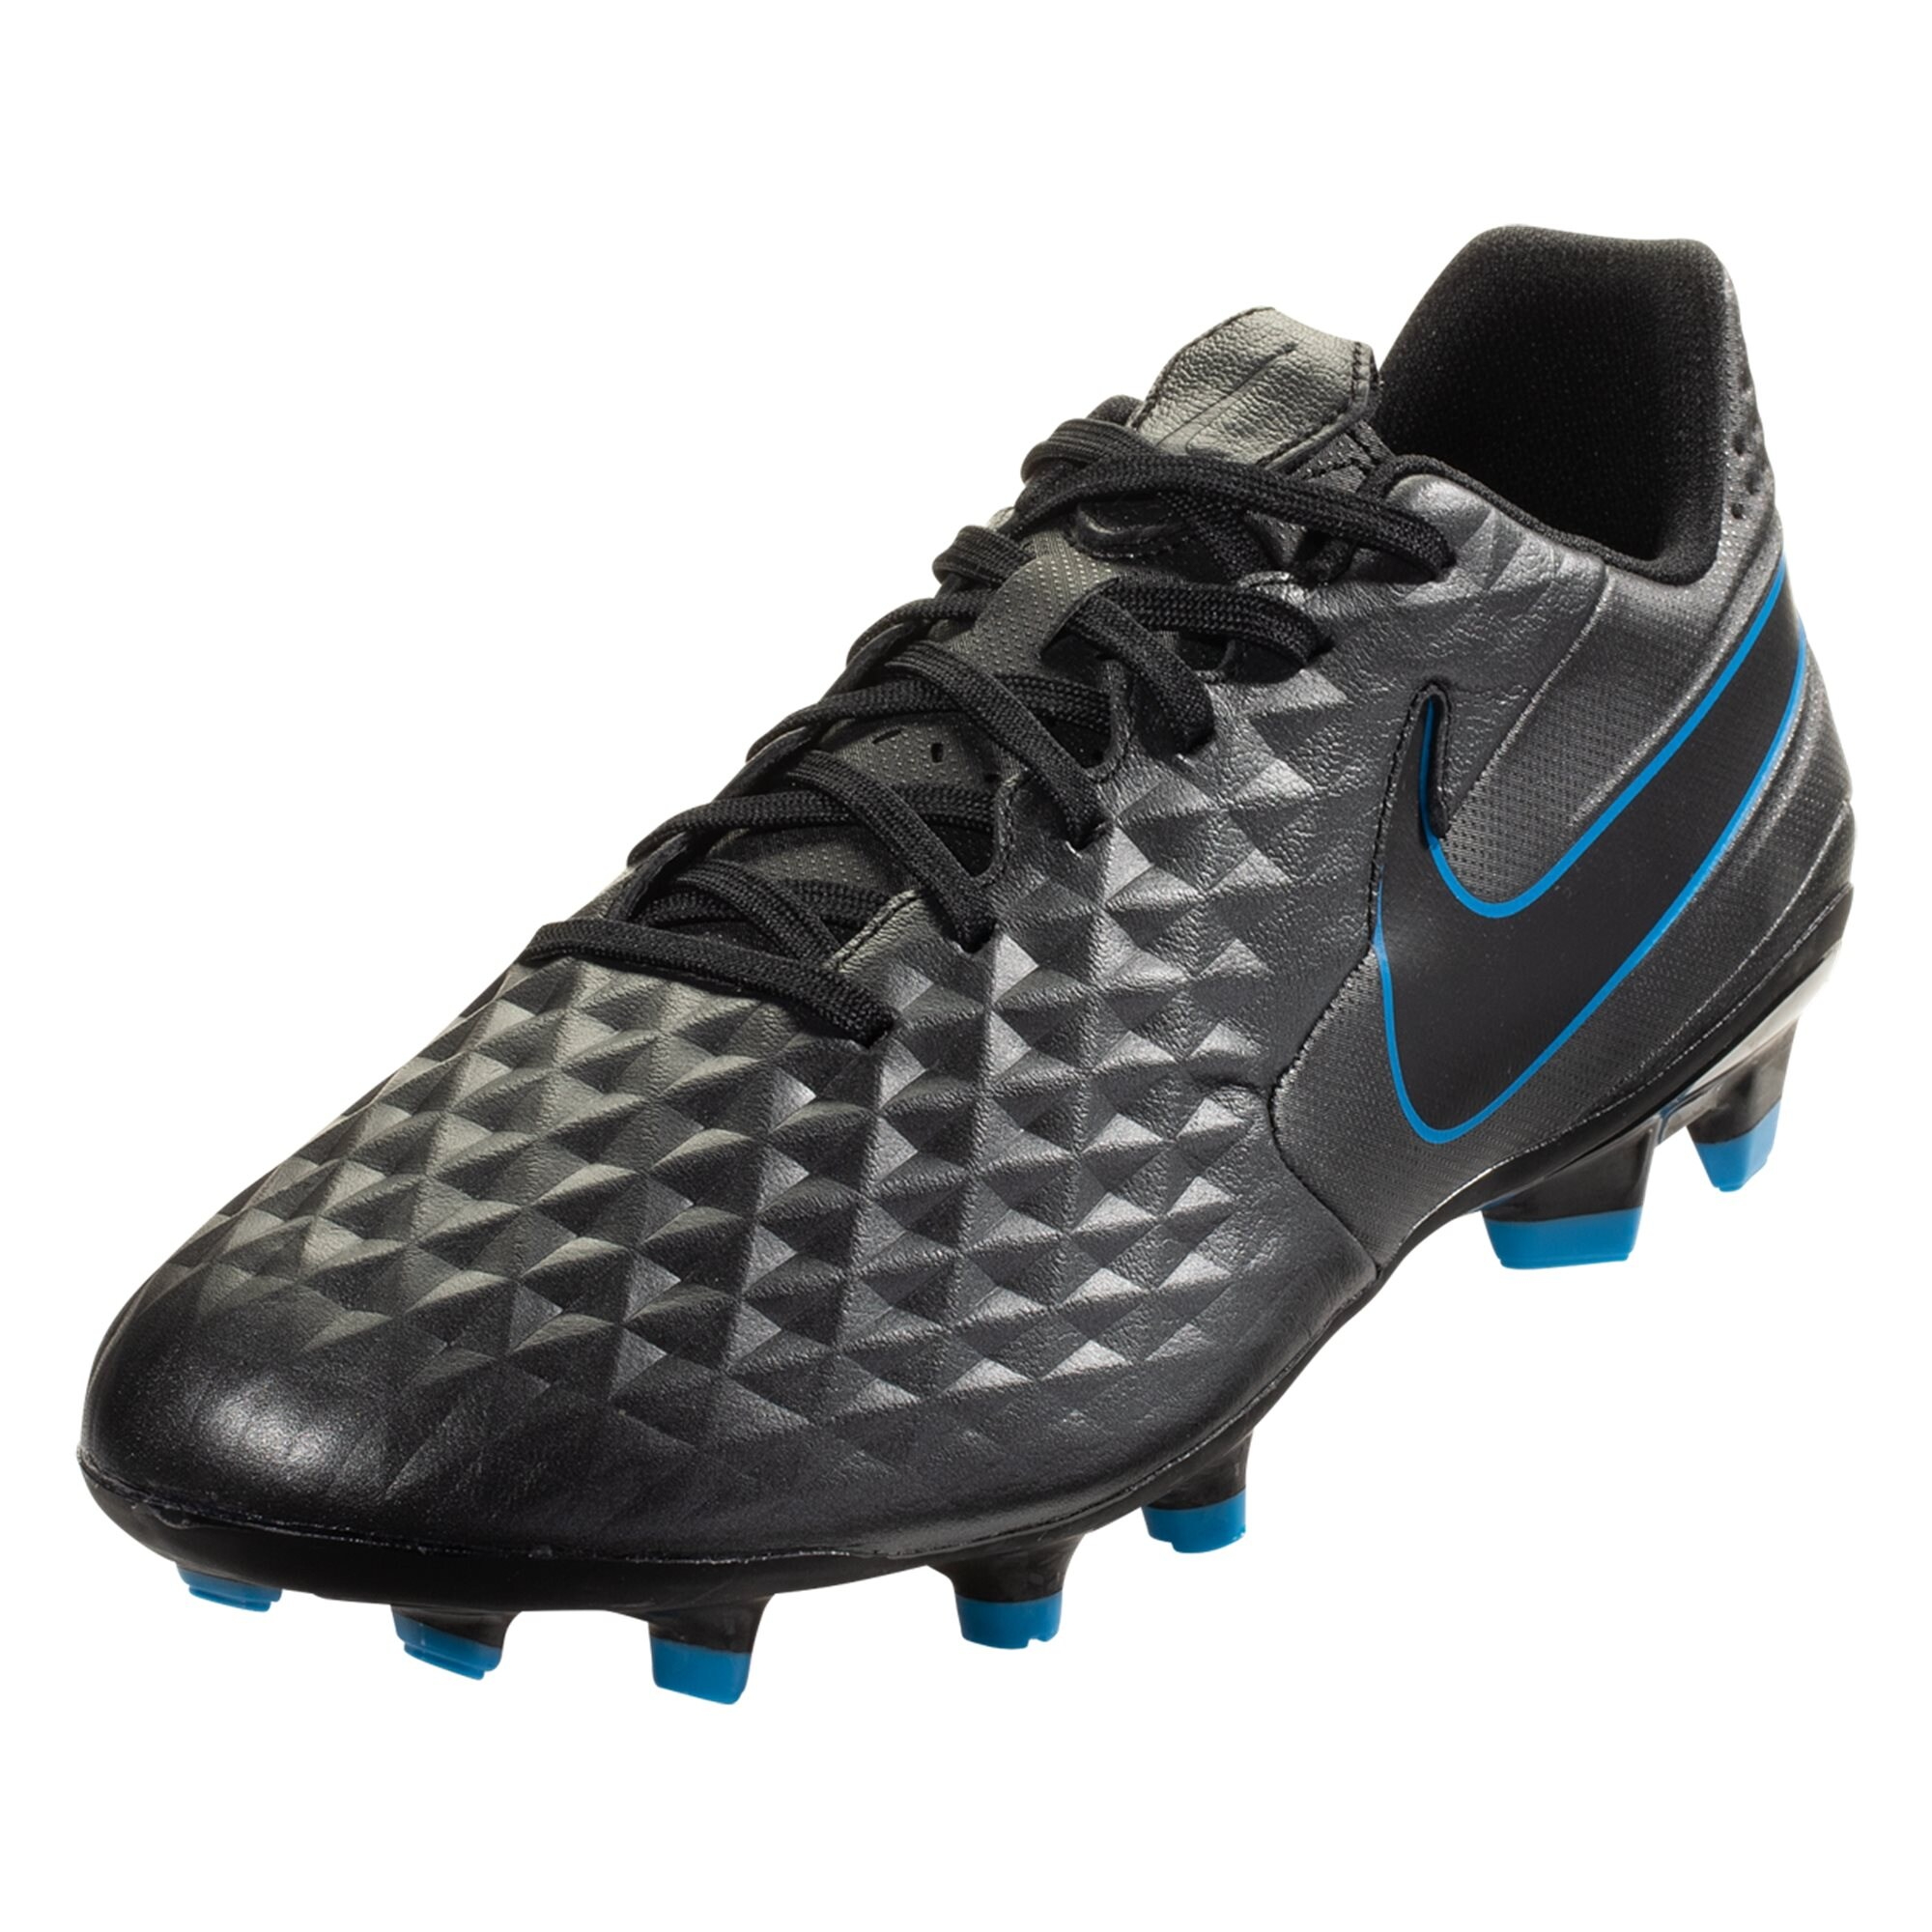 Nike Tiempo Legend 8 Academy FG Soccer Cleat - Black / Blue